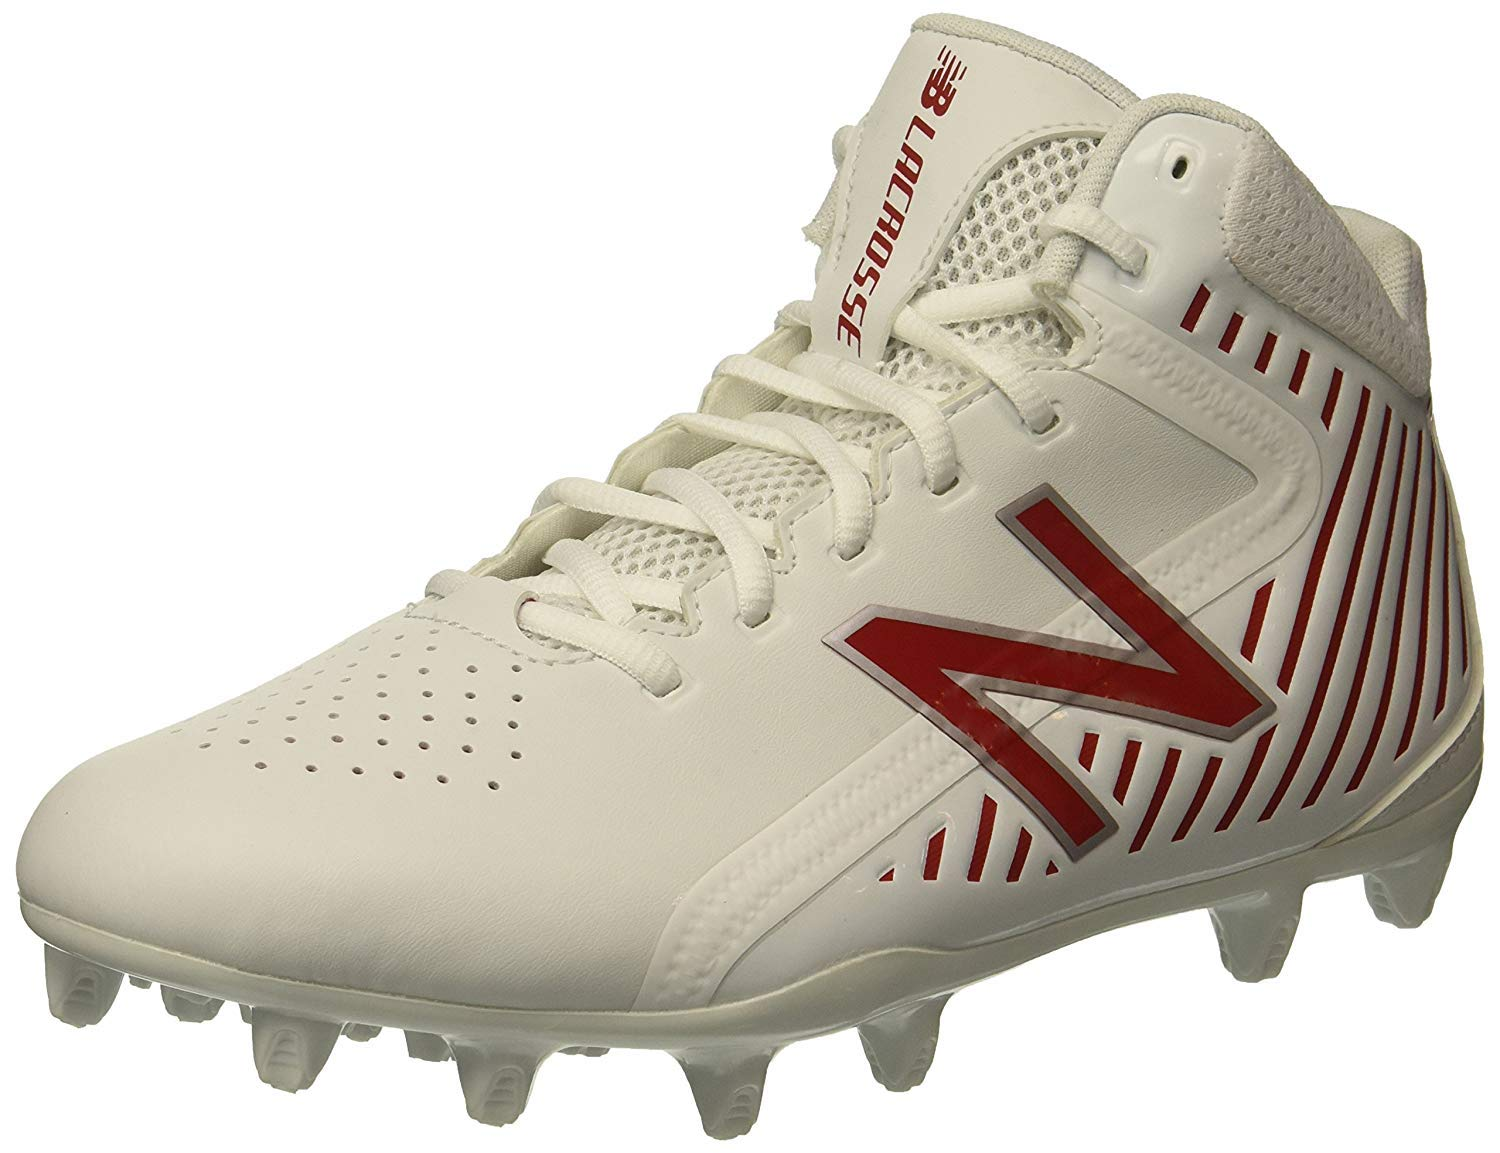 New Balance Men's Rush v1 Lacrosse Speed Shoe, White/Red, 13 2E US by New Balance